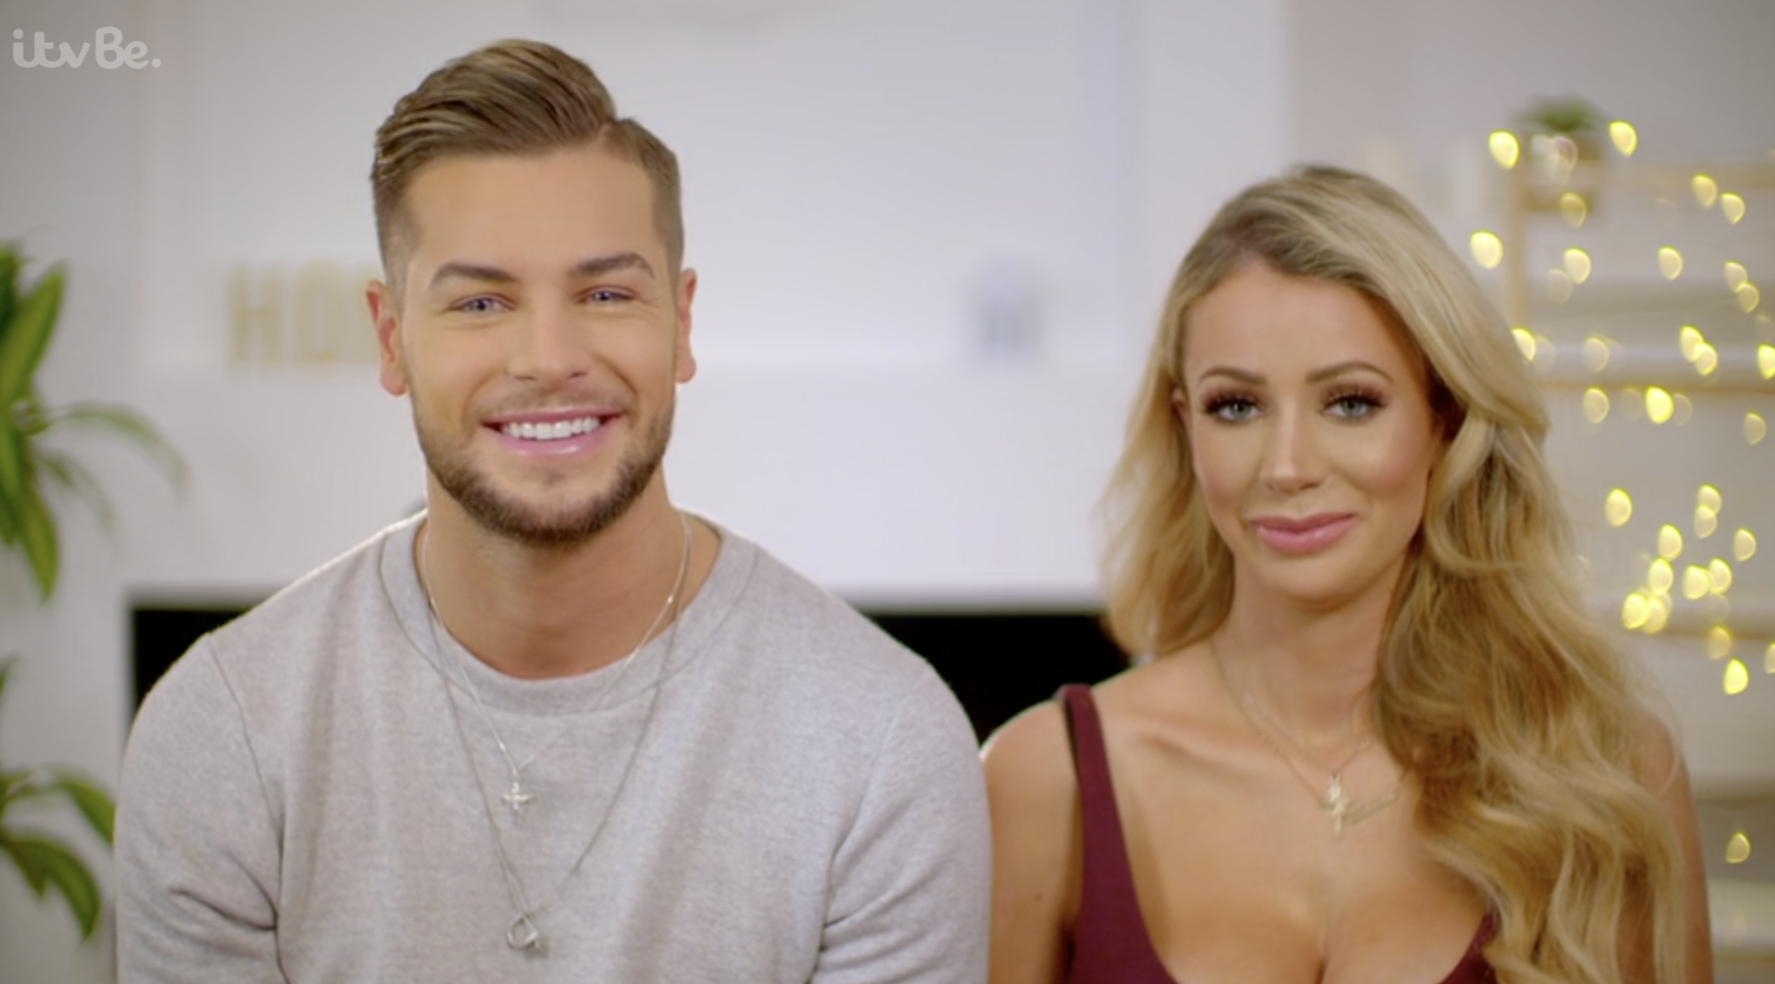 Love Island's Chris and Olivia divide viewers with explosive row